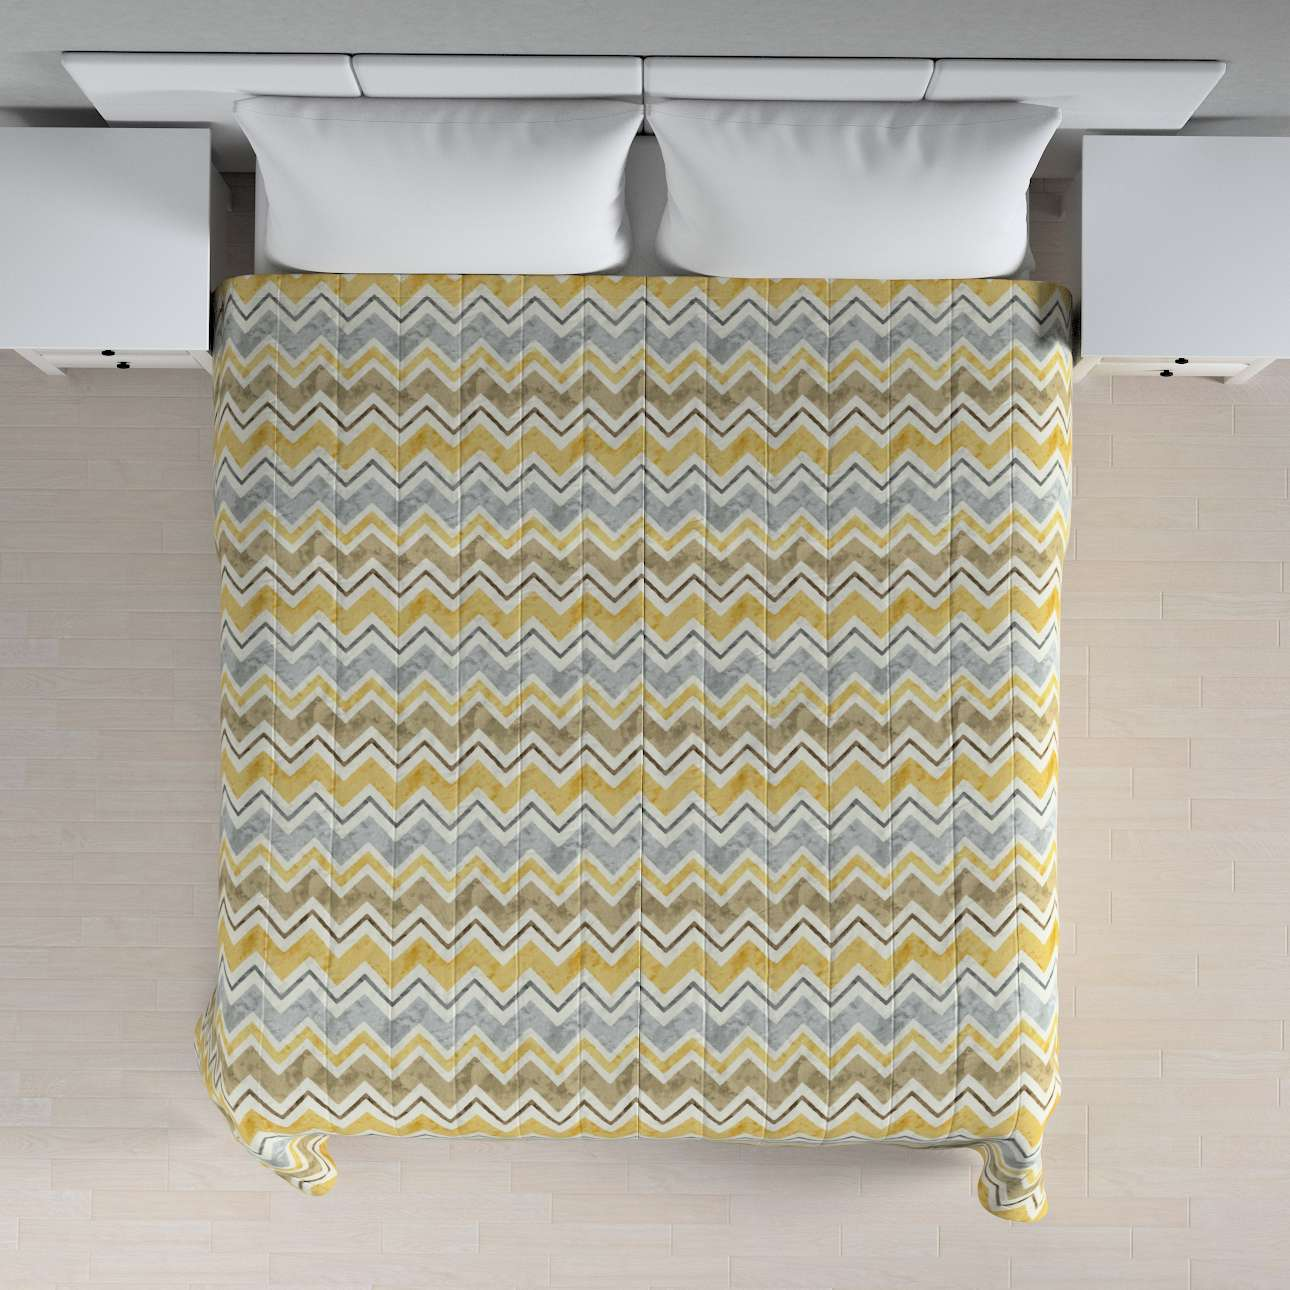 Stripe quilted throw 260 x 210 cm (102 x 83 inch) in collection Acapulco, fabric: 141-39